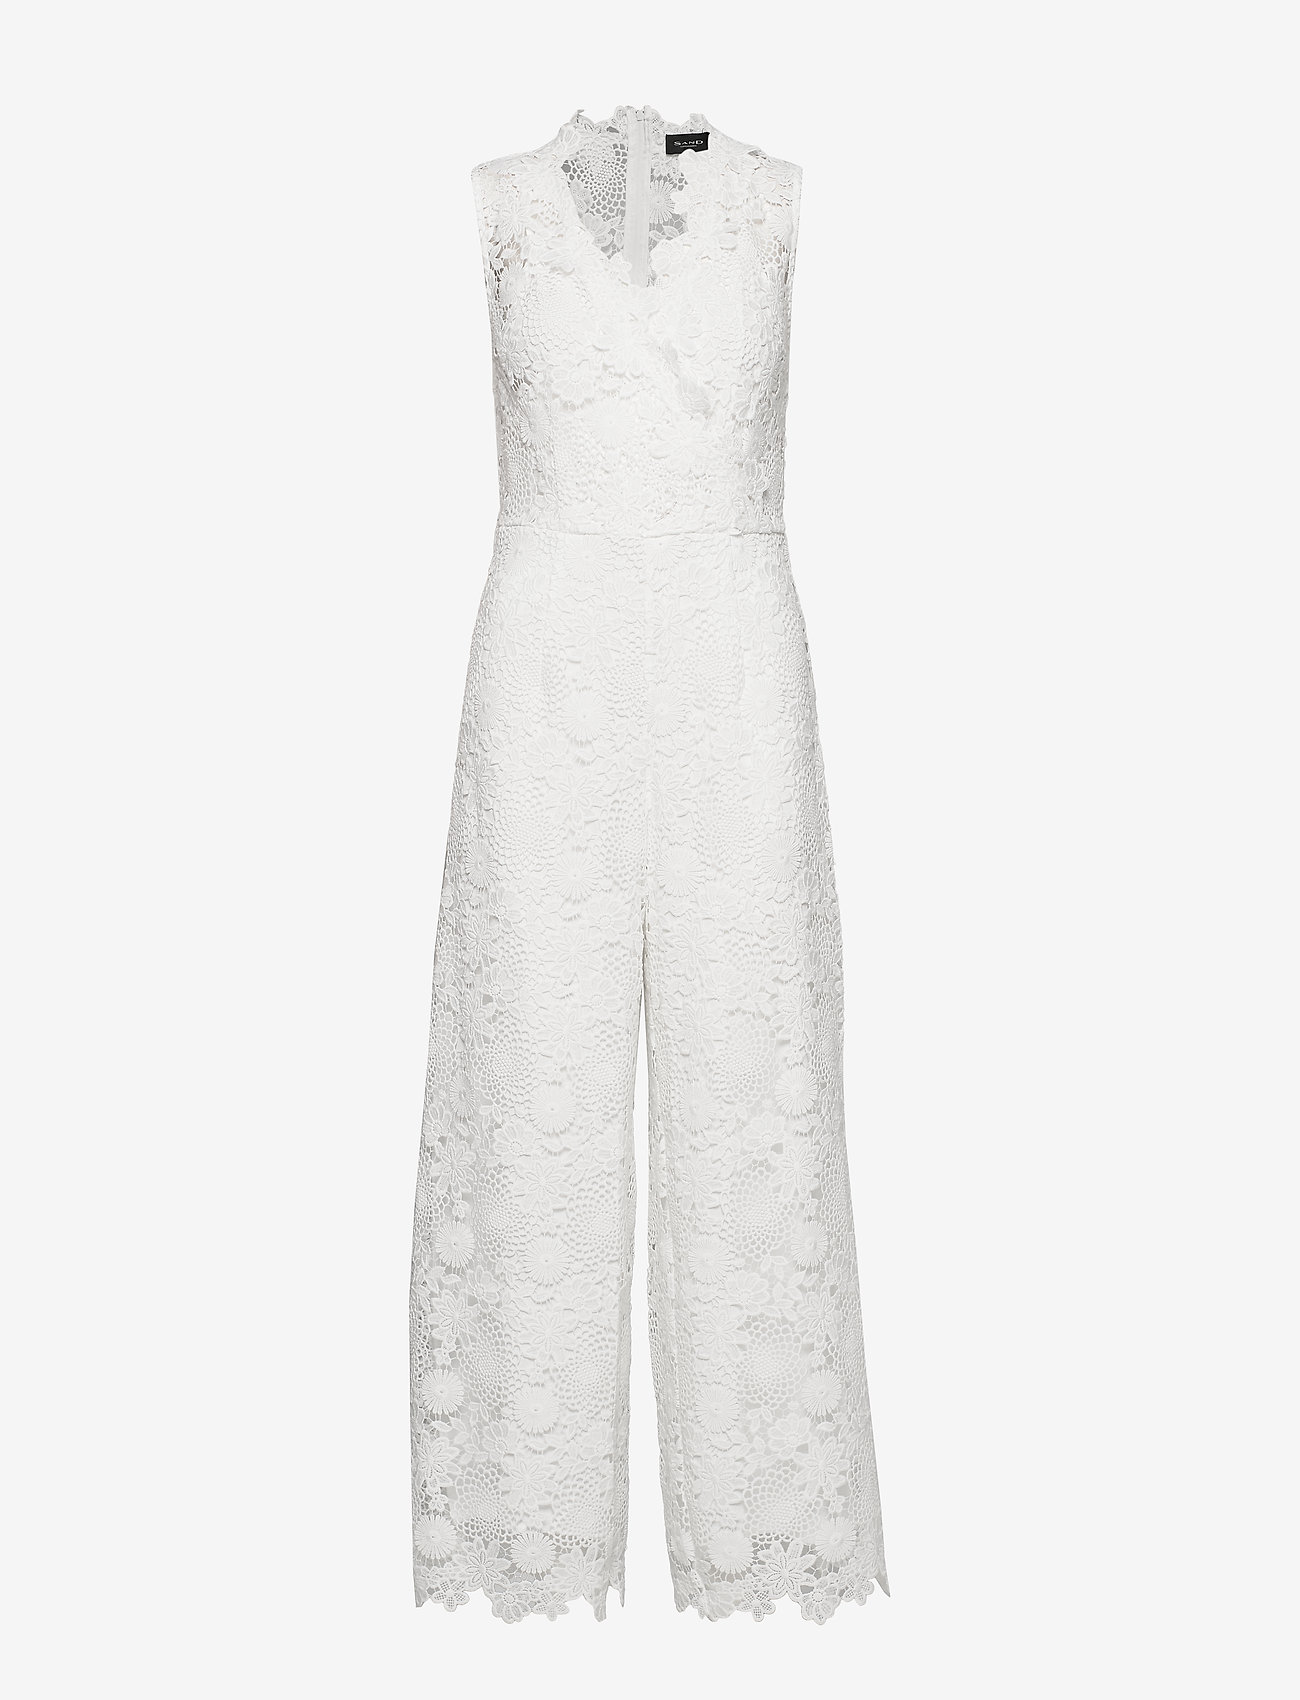 SAND 3168 - Whitney 2 - Jumpsuits OFF WHITE